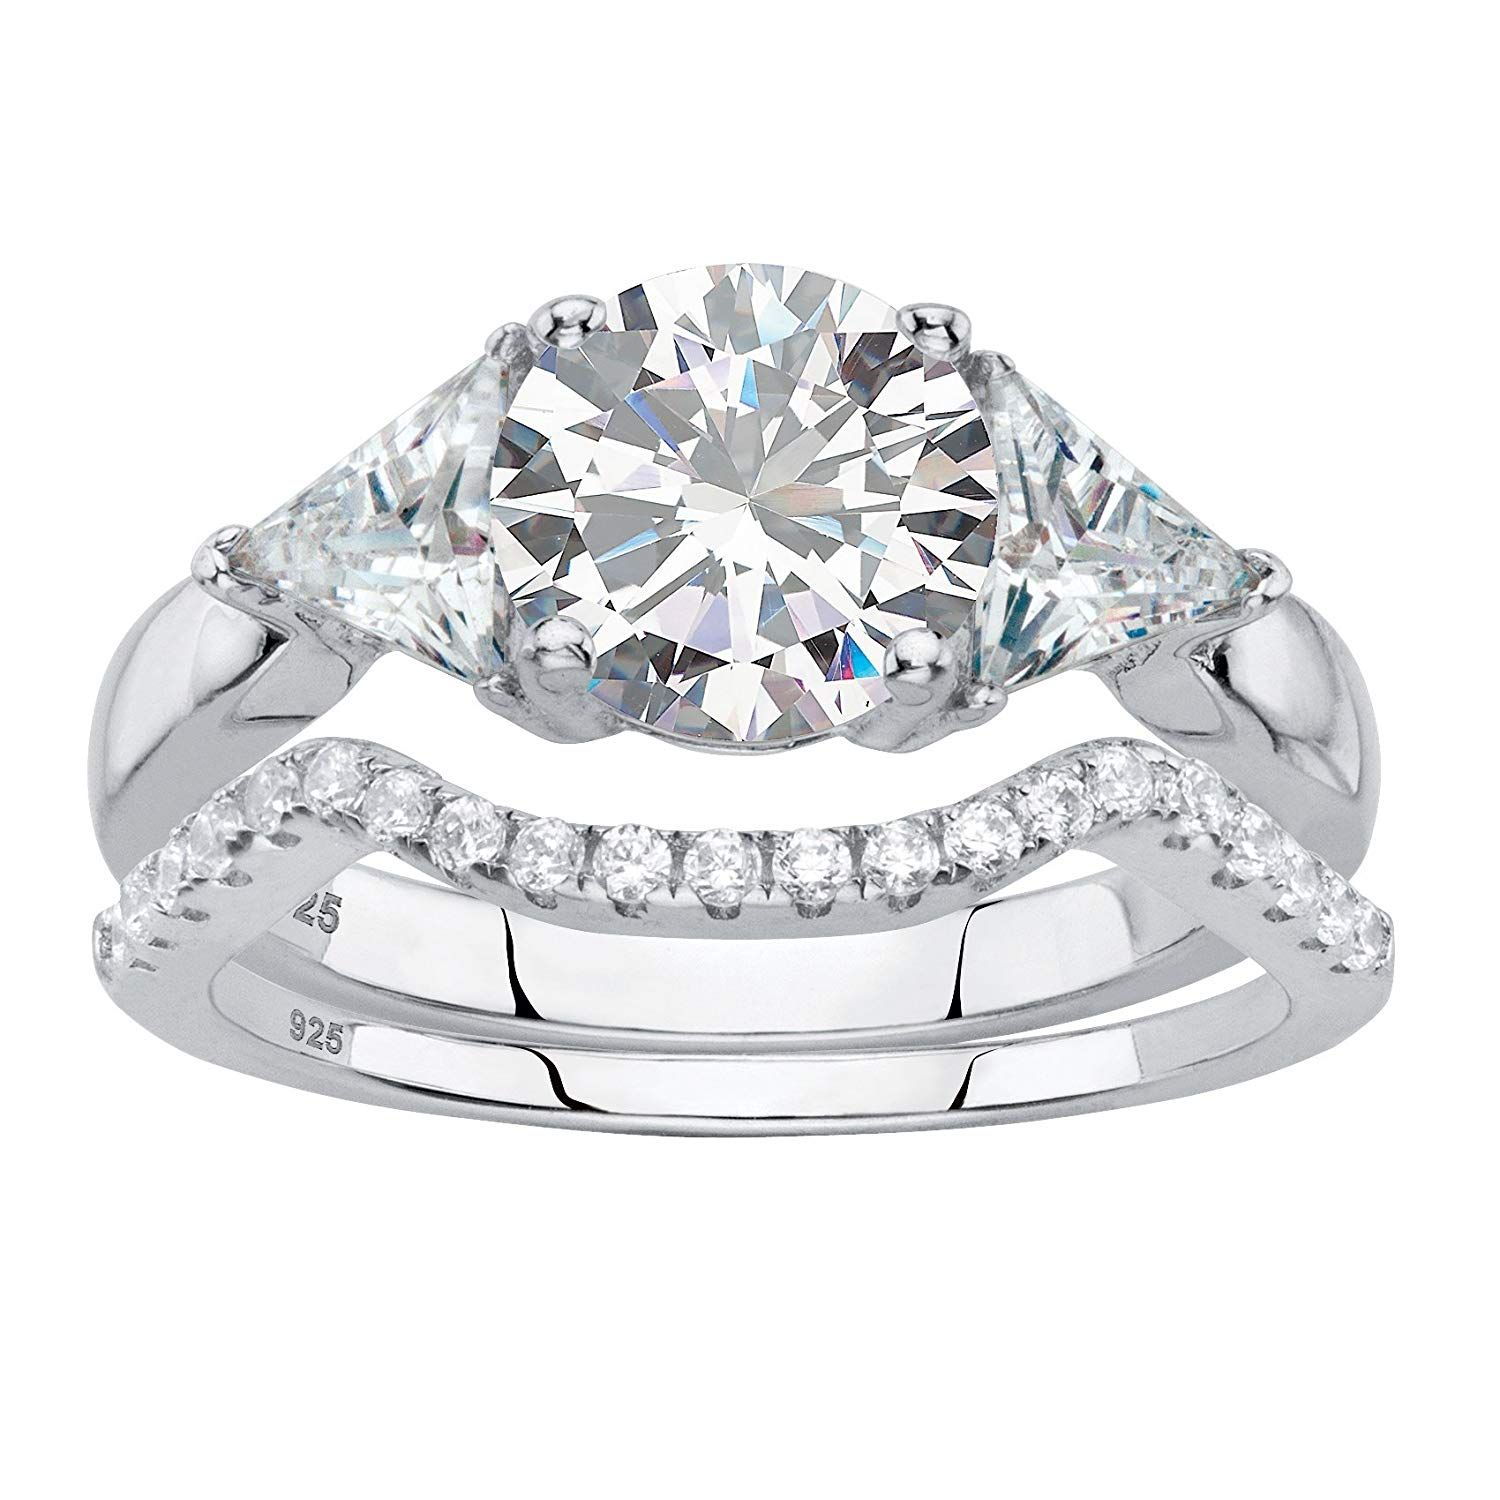 Round White Cubic Zirconia Platinum Over 925 Silver 2 Piece Bridal Ring Set Nice Of You To Drop By To Vis Bridal Rings White Gold Jewelry Bridal Ring Sets